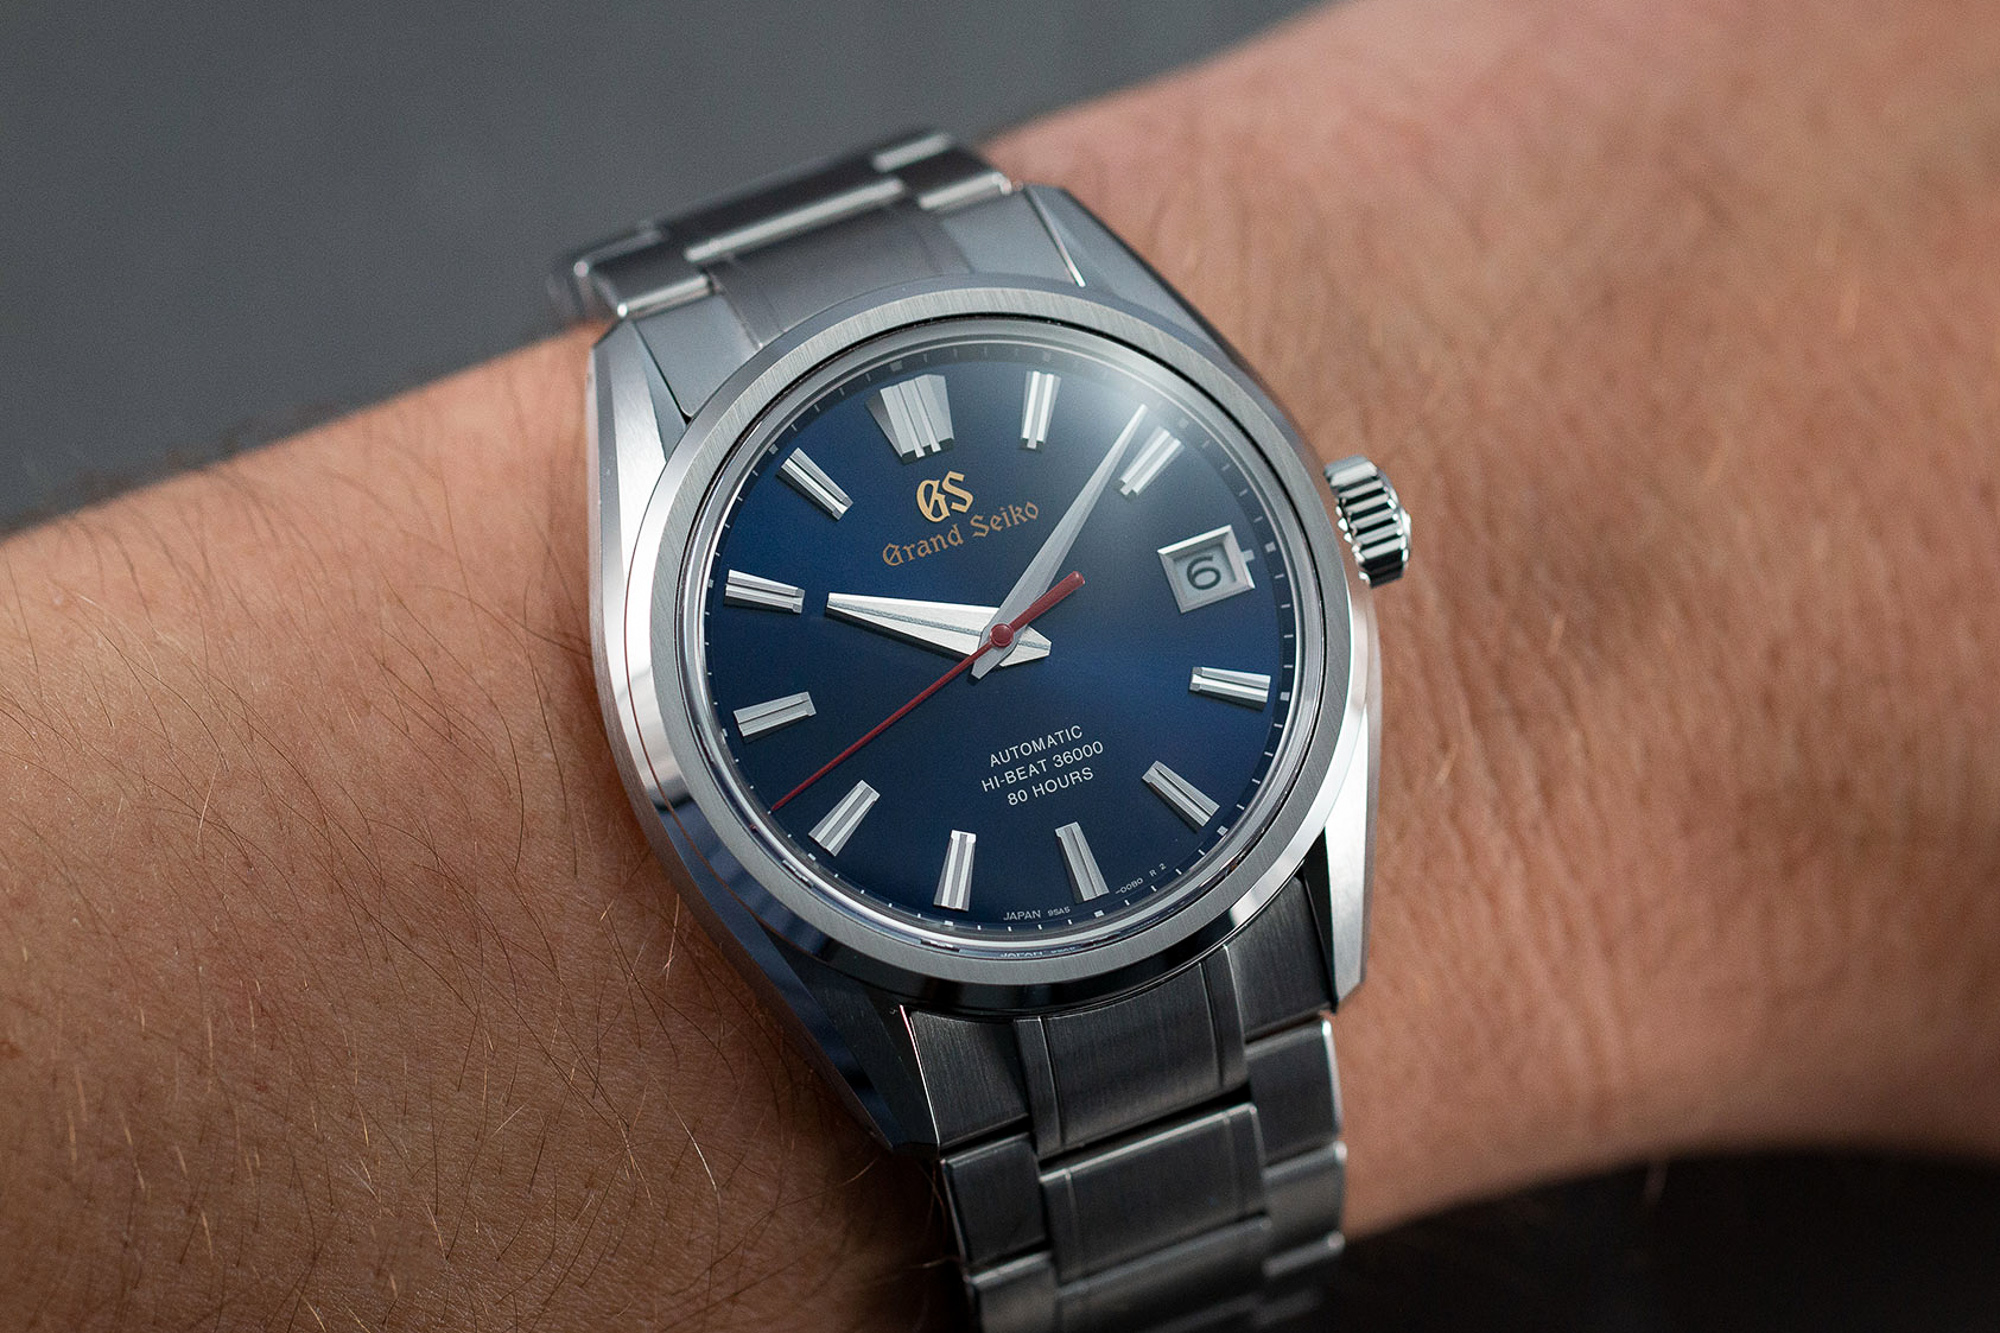 Grand Seiko SLGH003 blue dial stainless steel wristwatch on a wrist.